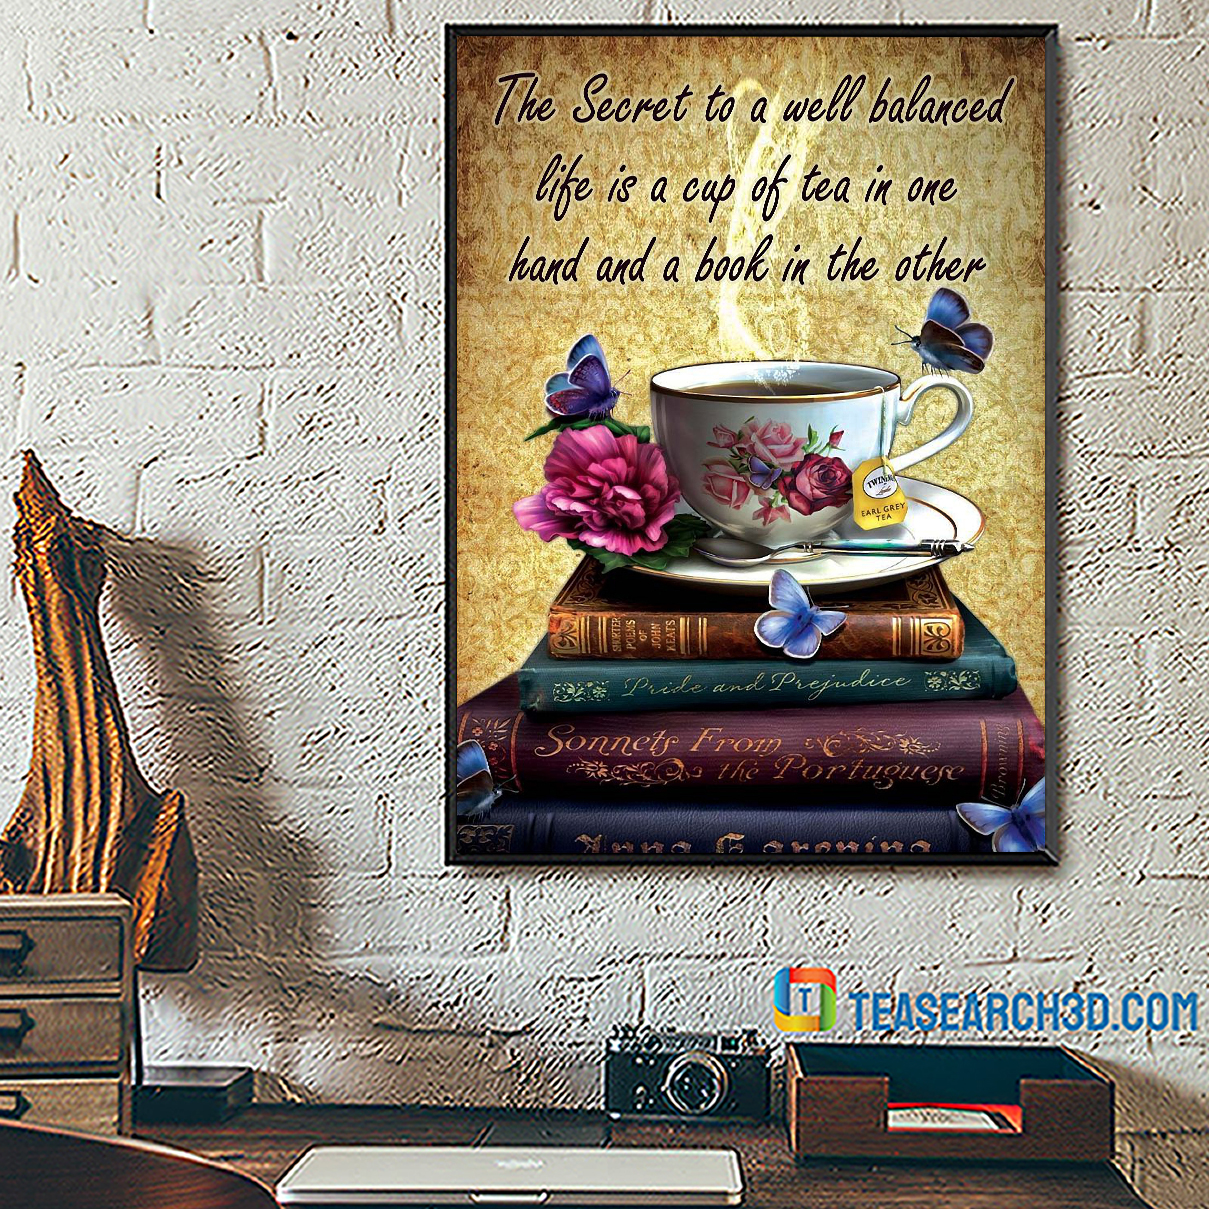 The secret to a well balanced life is a cup of tea in one hand and book in the other poster